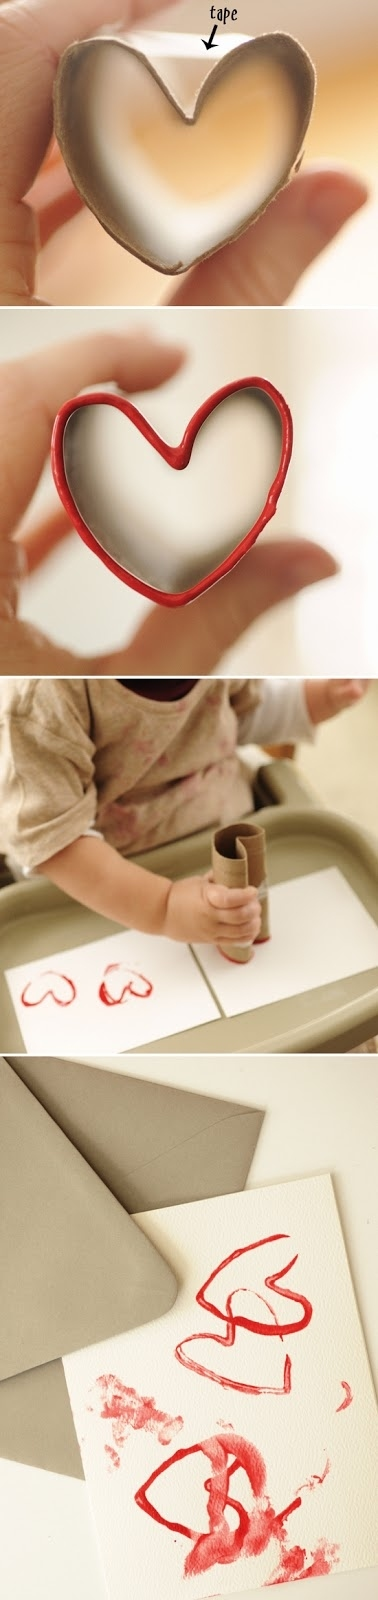 Toilet Paper Roll Stamps | 21 Toilet Paper Roll Craft Ideas